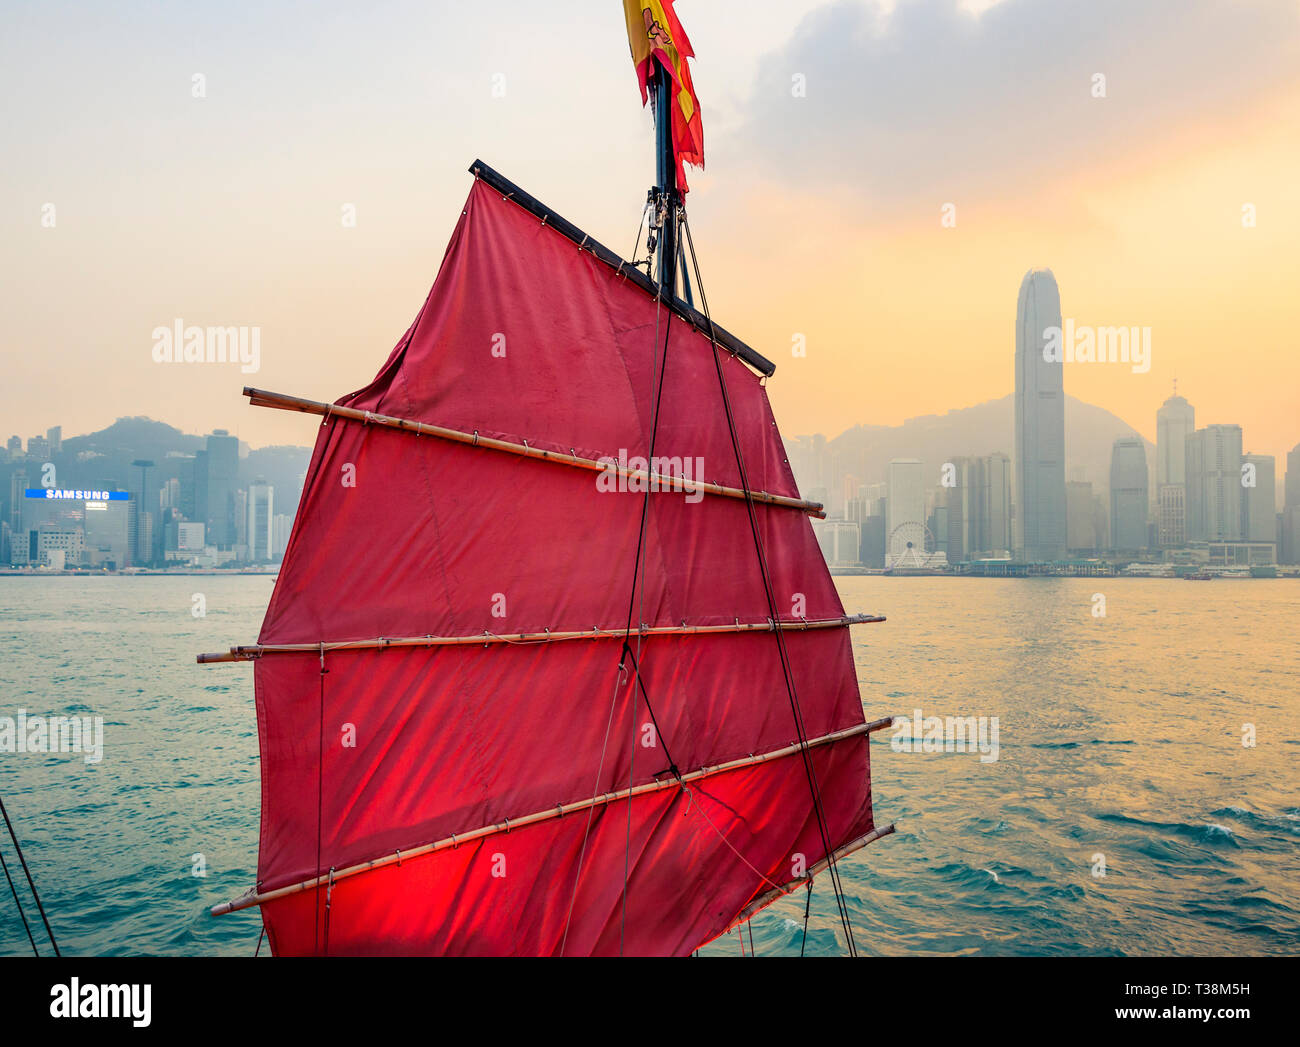 Sail detail of the Aqualuna junk tourist boat at sunset with the Hong Kong Island skyline behind, Victoria Harbour, Hong Kong - Stock Image